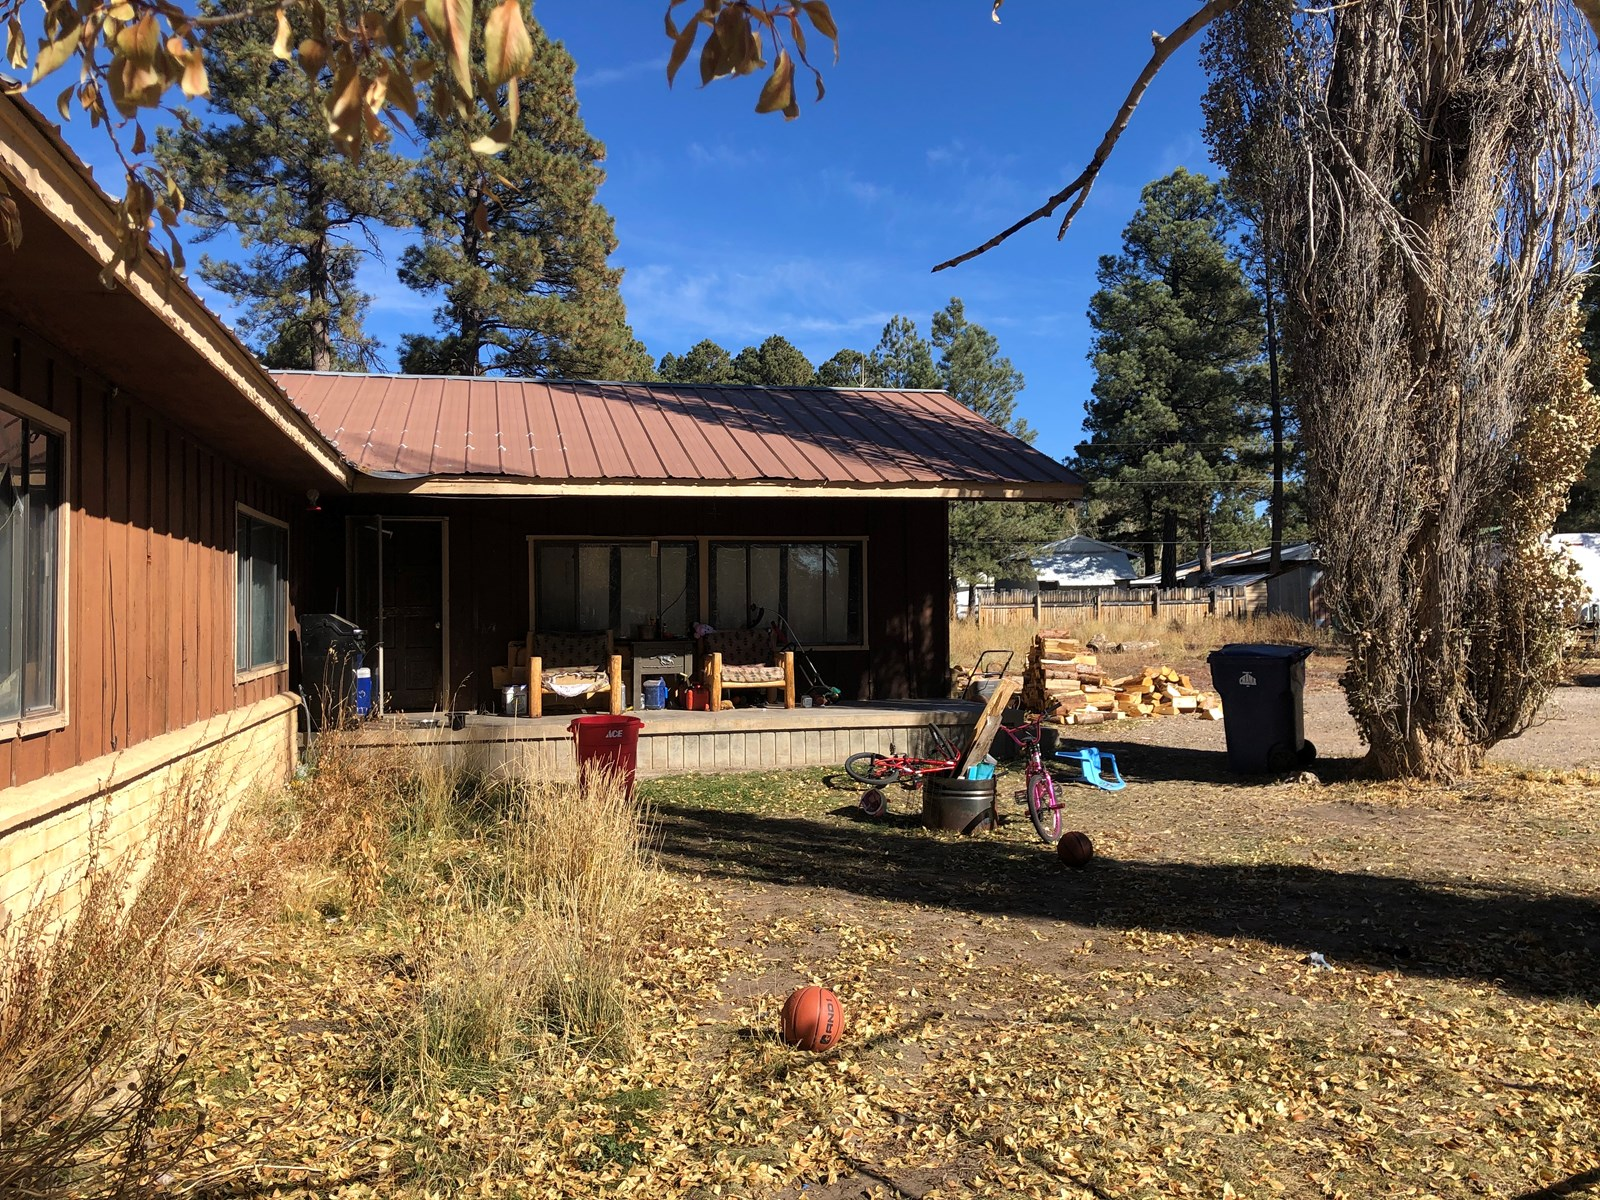 Home for sale in Chama NM minutes away from Cumbres Train